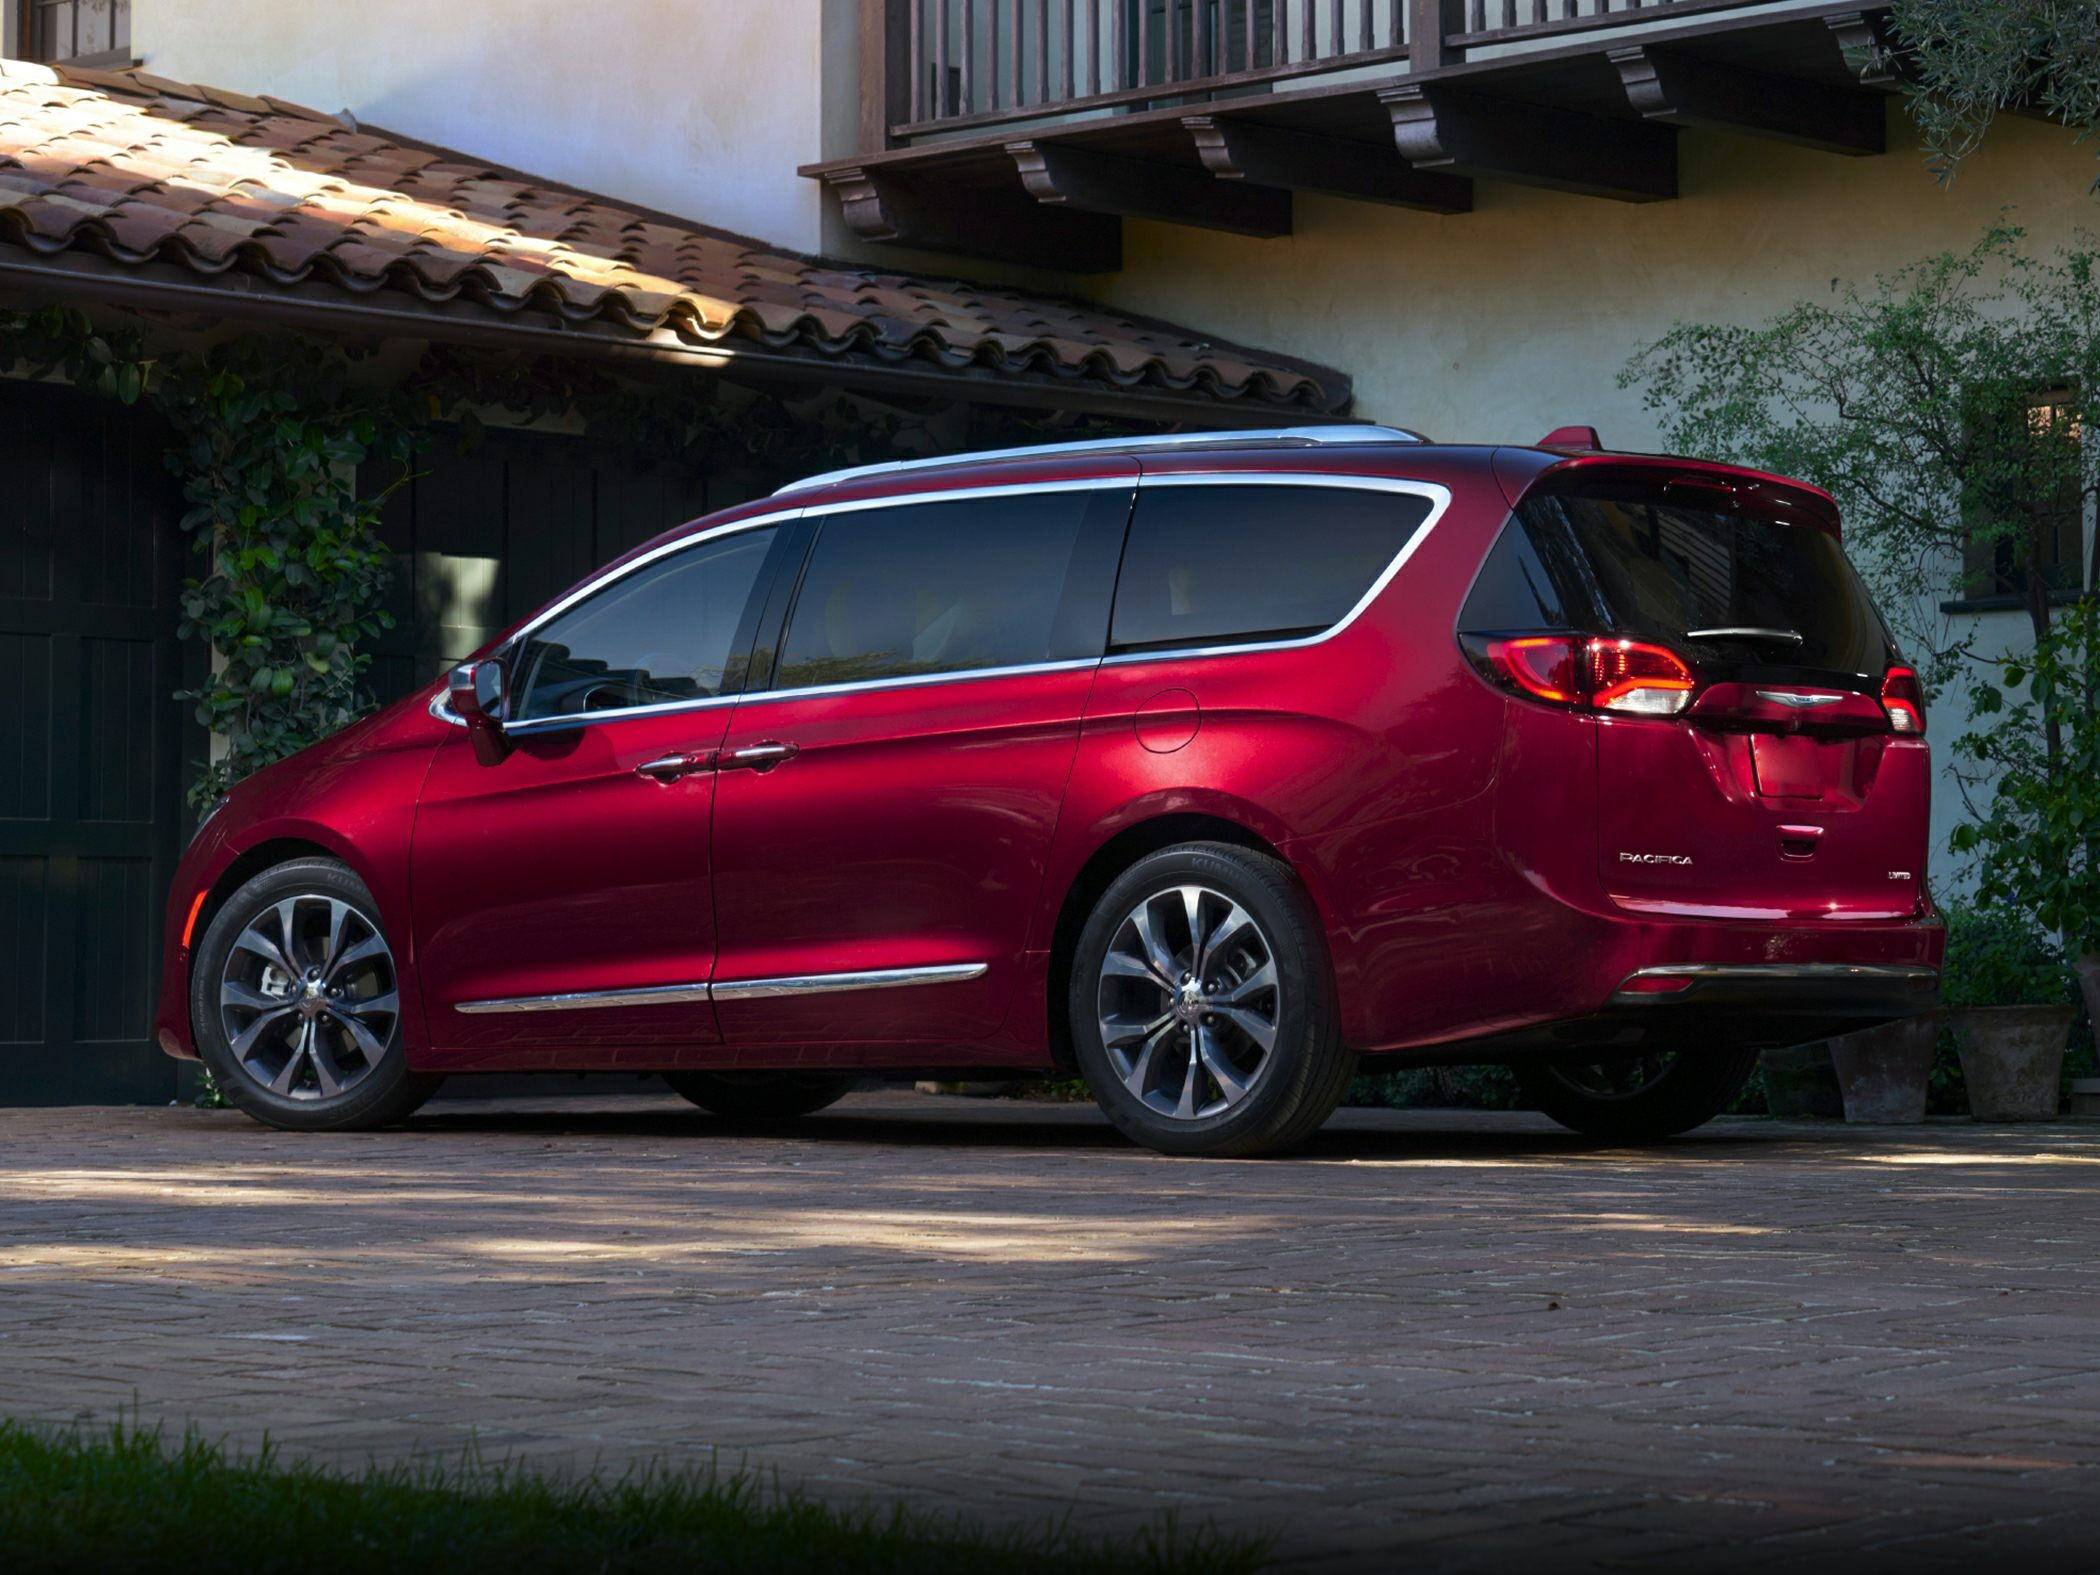 See 2018 Chrysler Pacifica Color Options - CarsDirect